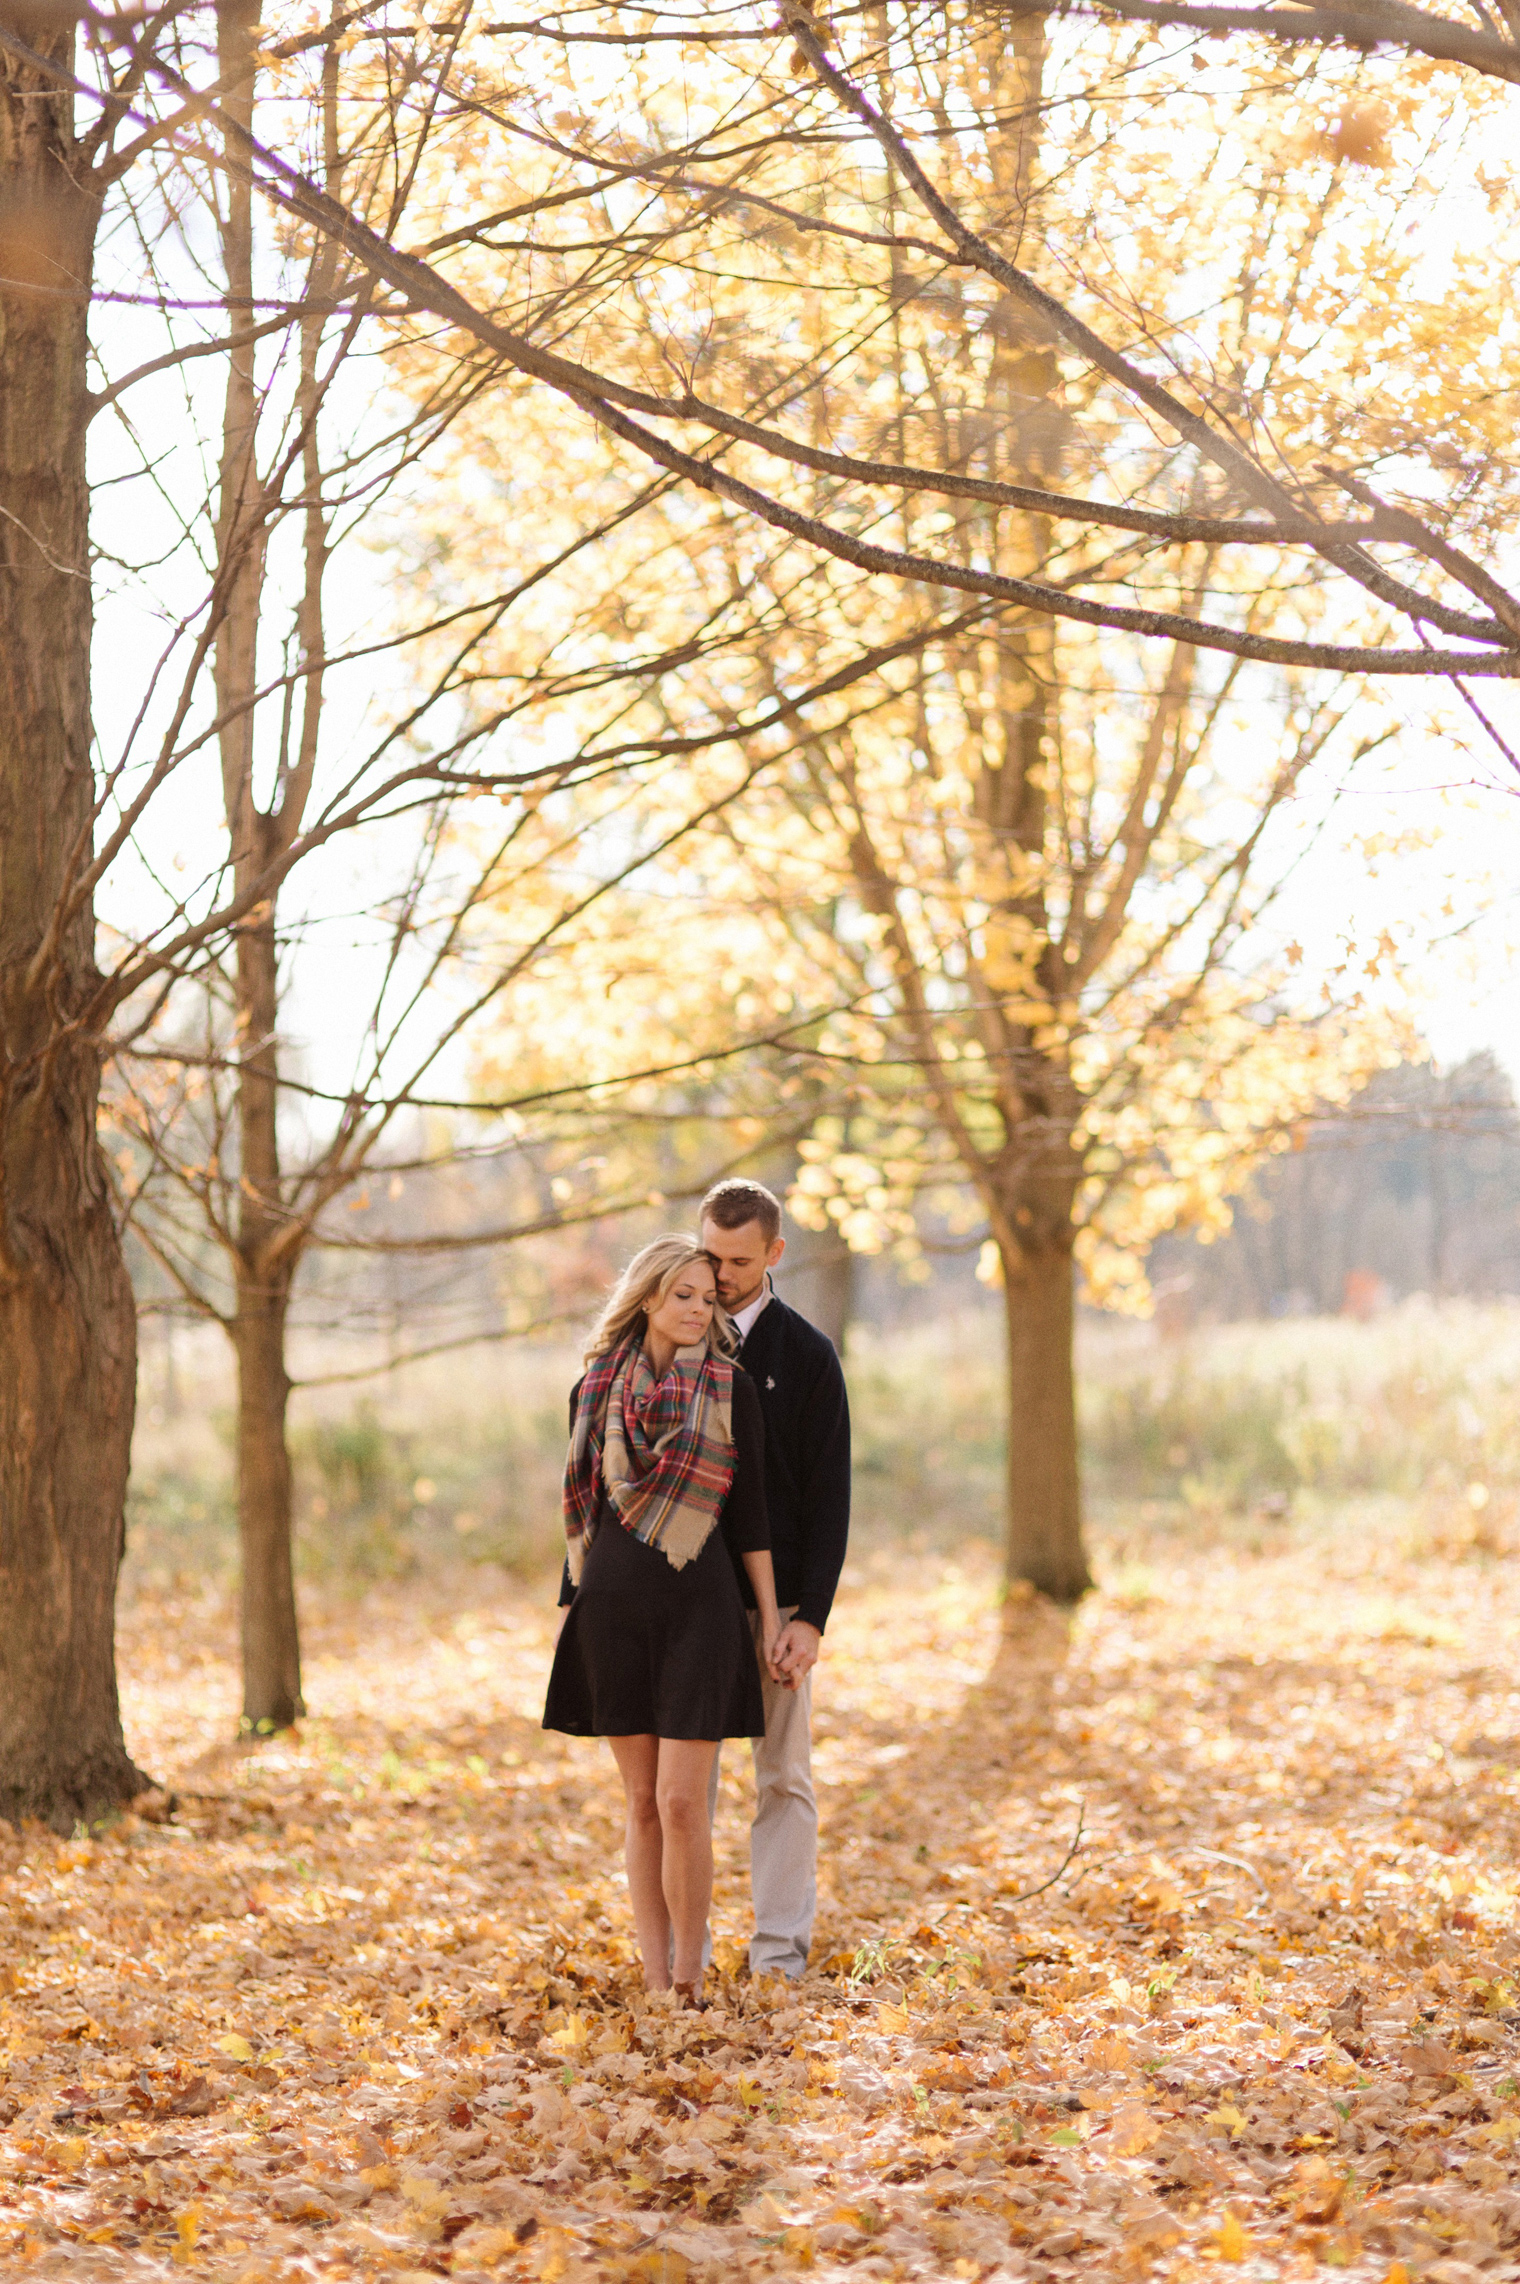 Bright orange and tell fall foliage at a fall couples photography session at the Ann Arbor Botanical Gardens by wedding photographer Heather Jowett